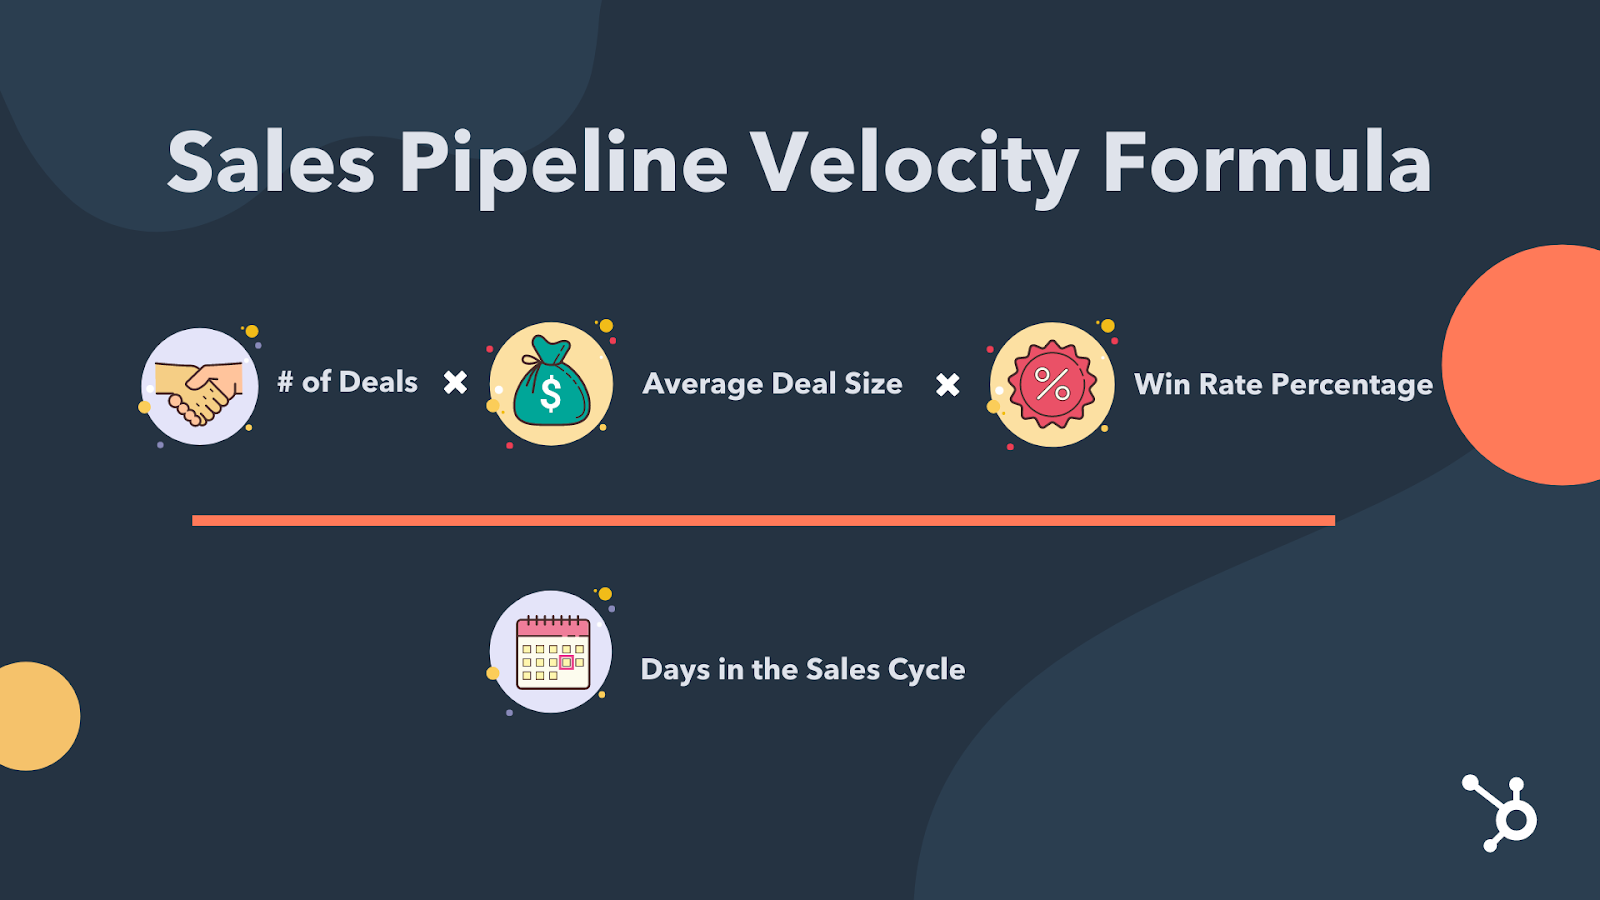 Sales Pipeline Velocity Formula by HubSpot